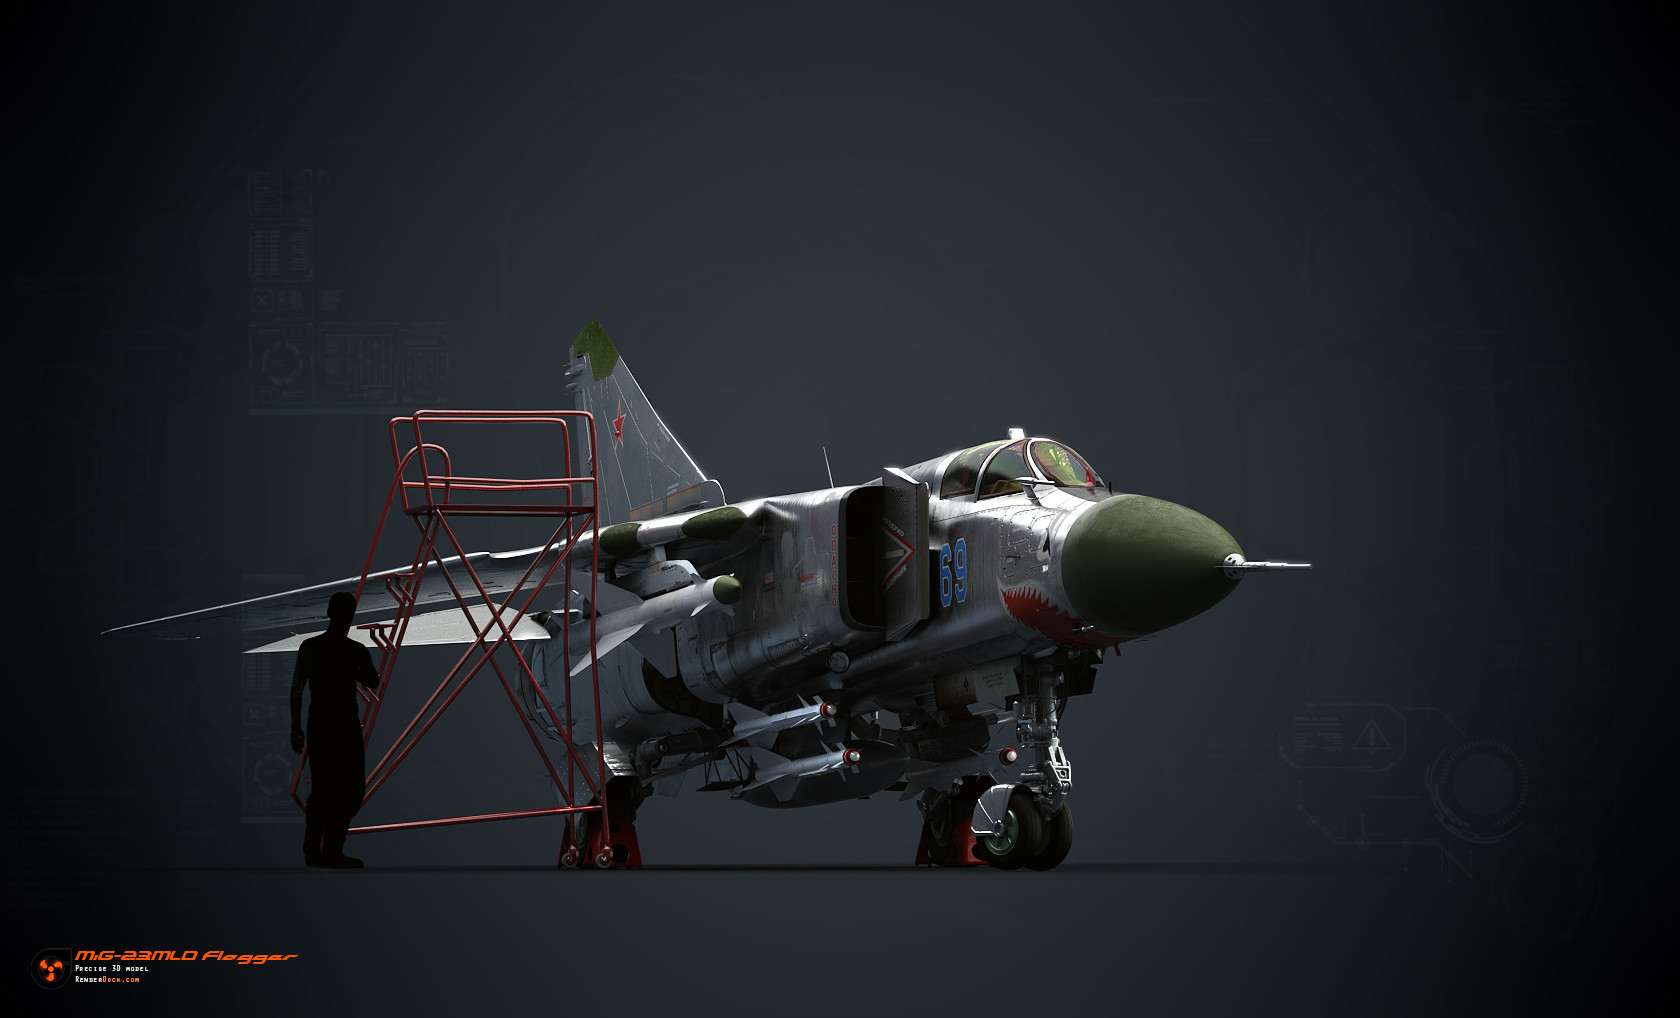 Mig-23 was one of the most advanced fighters of its time.